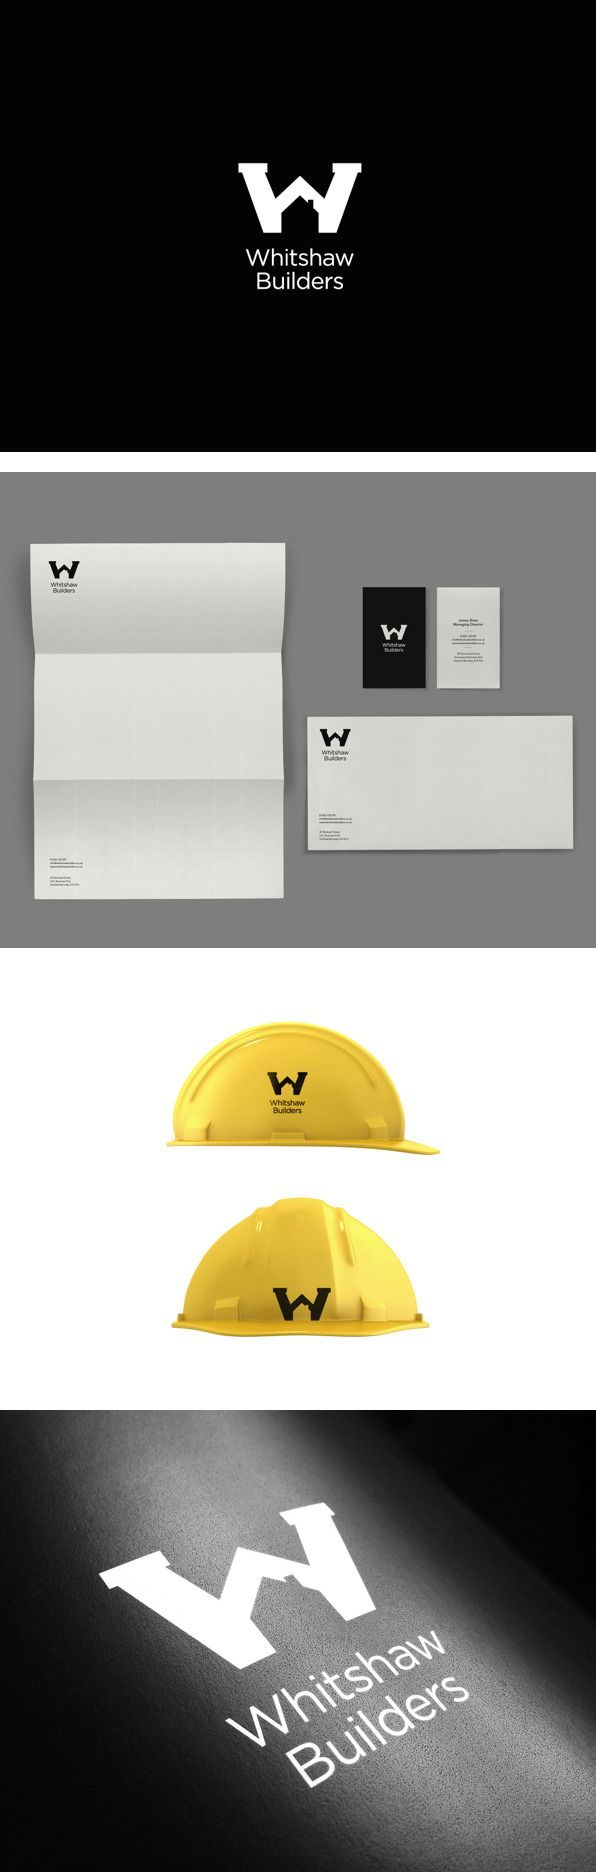 Whitshaw Identity by Kyle Wilkinson | #stationary #corporate #design #corporatedesign #identity #branding #marketing < repinned by www.BlickeDeeler.de | Take a look at www.LogoGestaltung-Hamburg.de